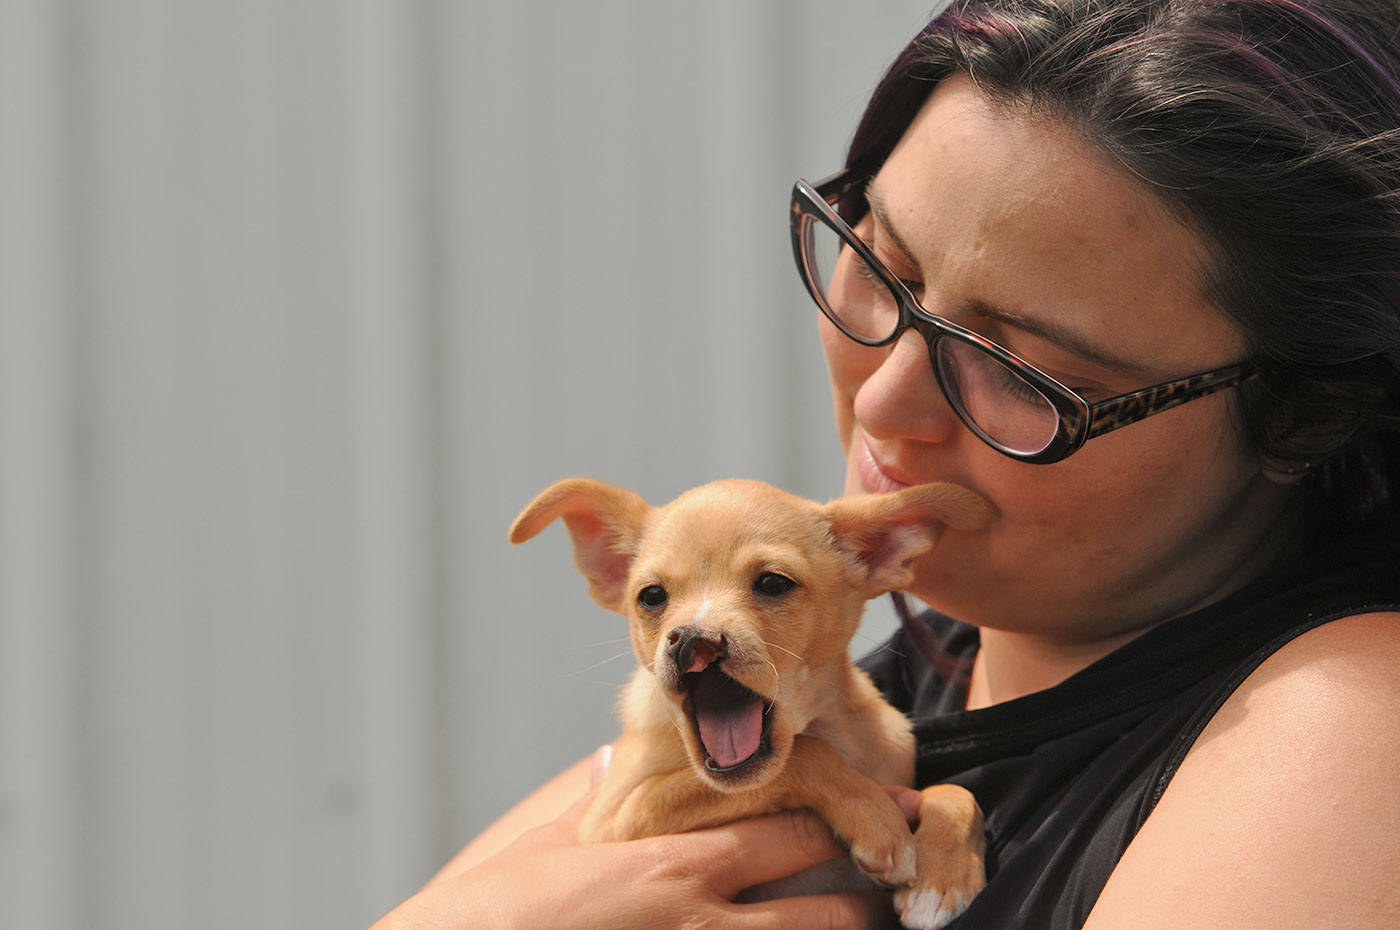 Baby Snoot is a chihuahua cross who was born with a cleft palate. He is seen here with Chilliwack SPCA branch manager Chloé MacBeth at the shelter on Thursday, June 3, 2021. (Jenna Hauck/ Chilliwack Progress)